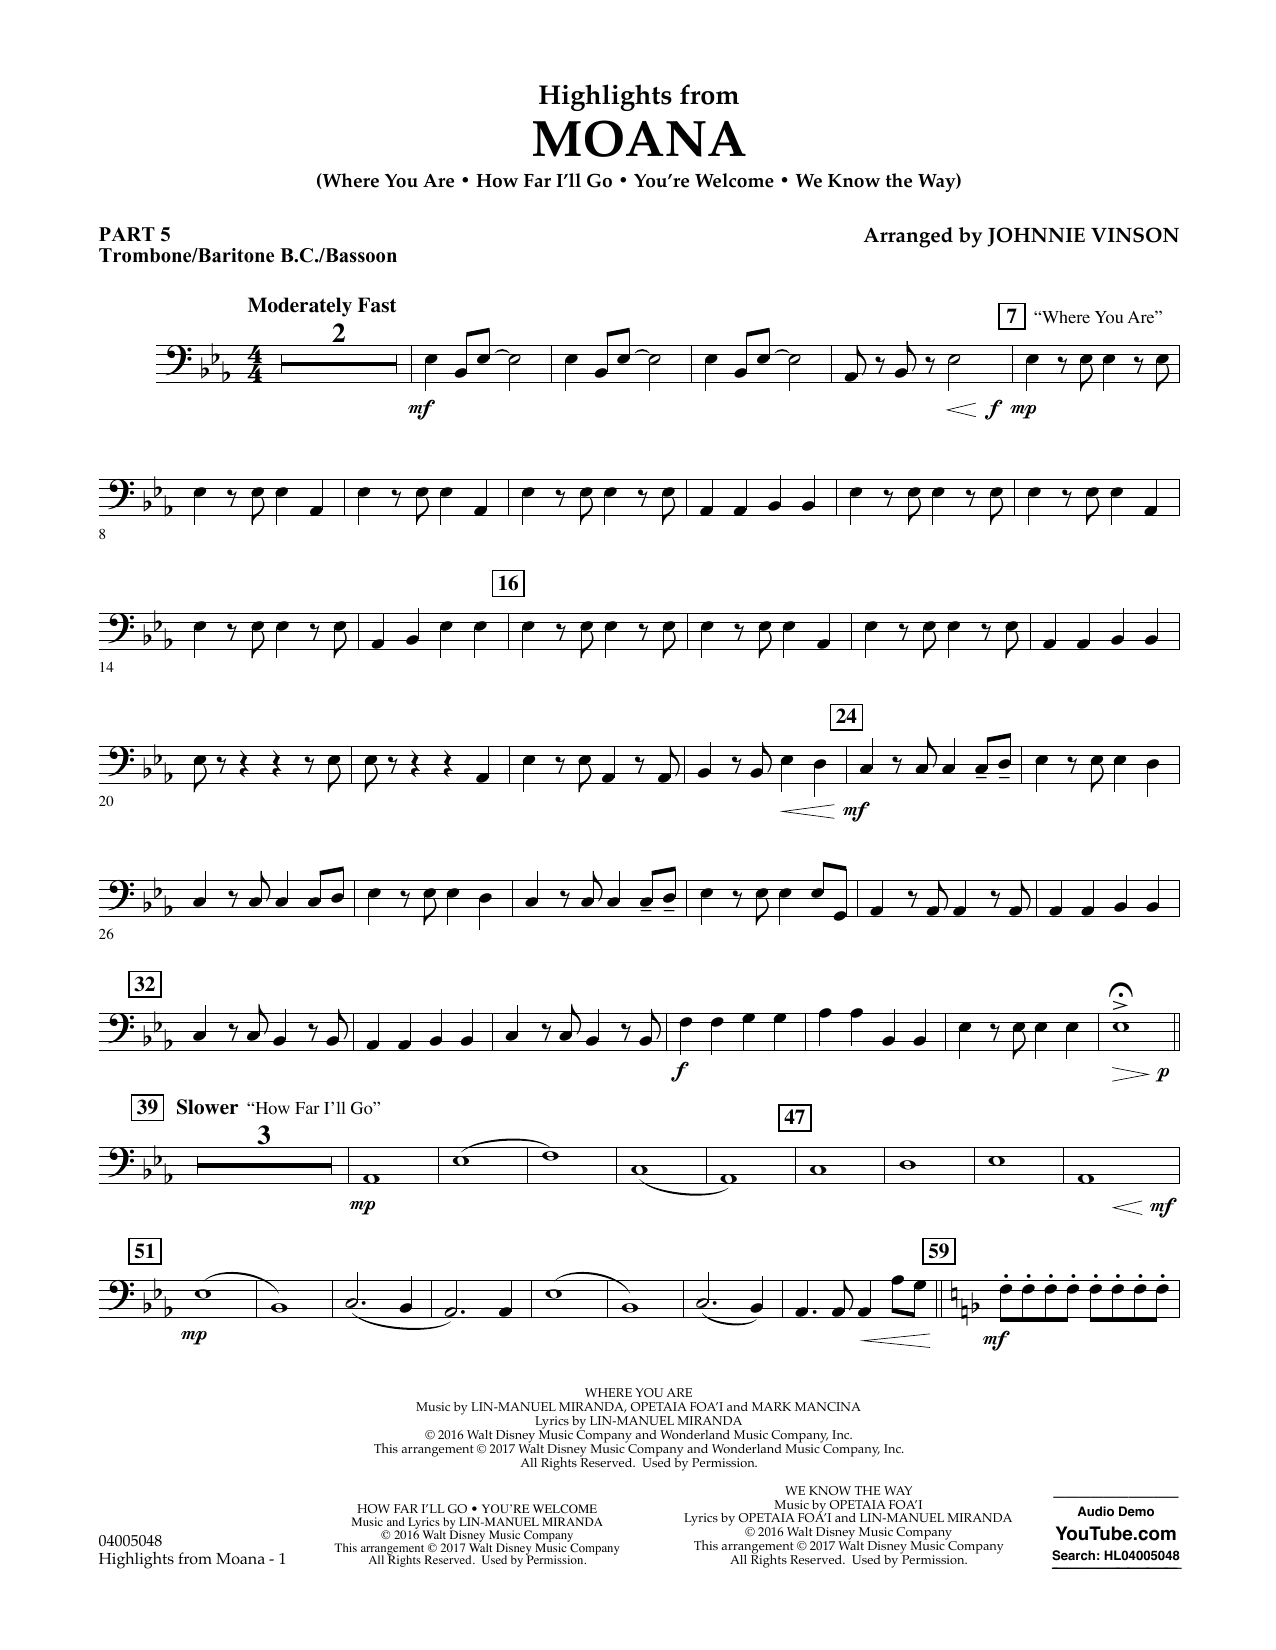 Highlights from Moana - Pt.5 - Trombone/Bar. B.C./Bsn. Sheet Music